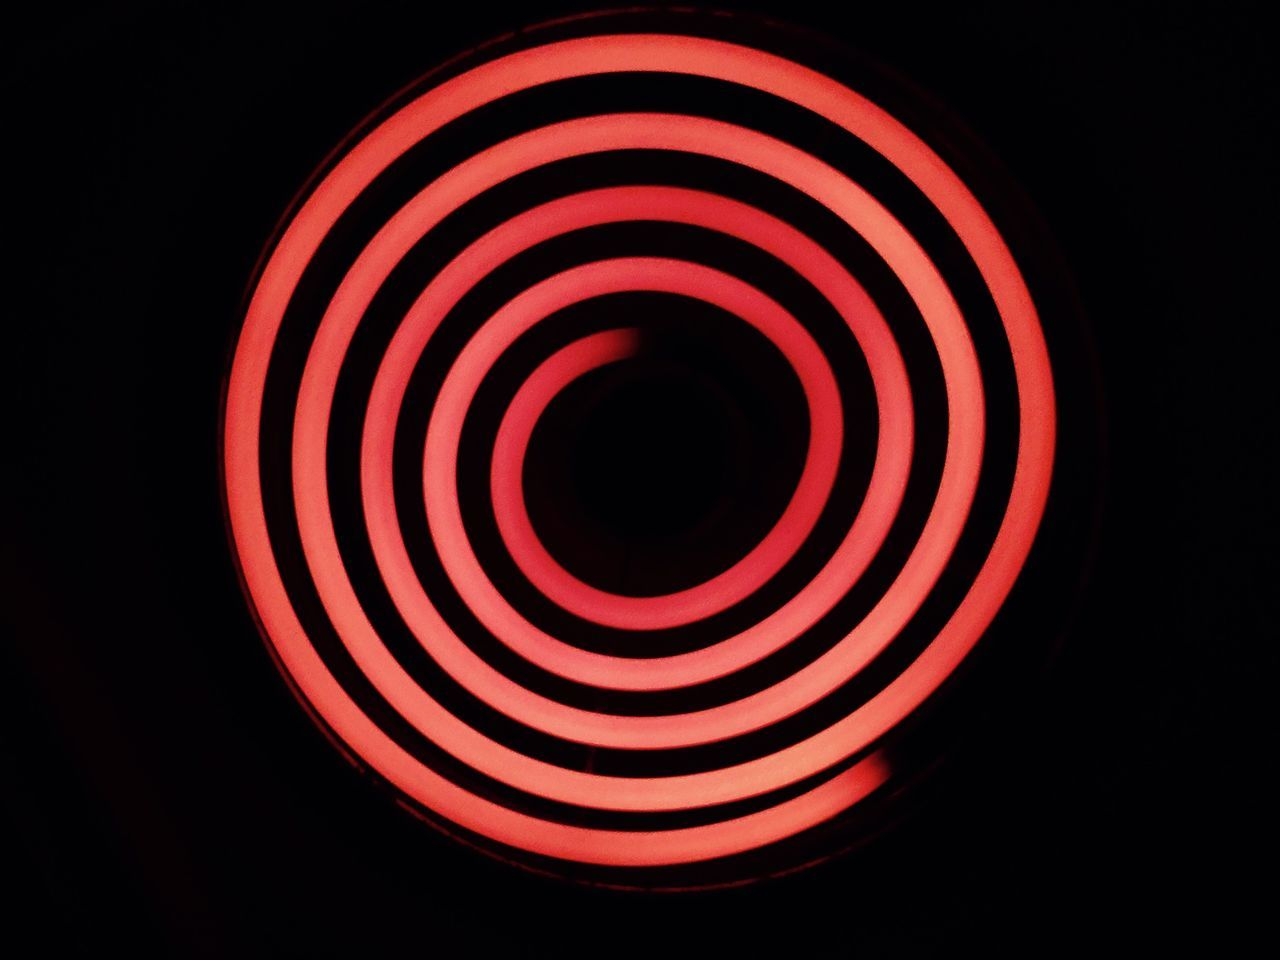 Circle Night Spiral Red No People Black Background Close-up Concentric Outdoors High Angle View Stove Stove Top Indoors